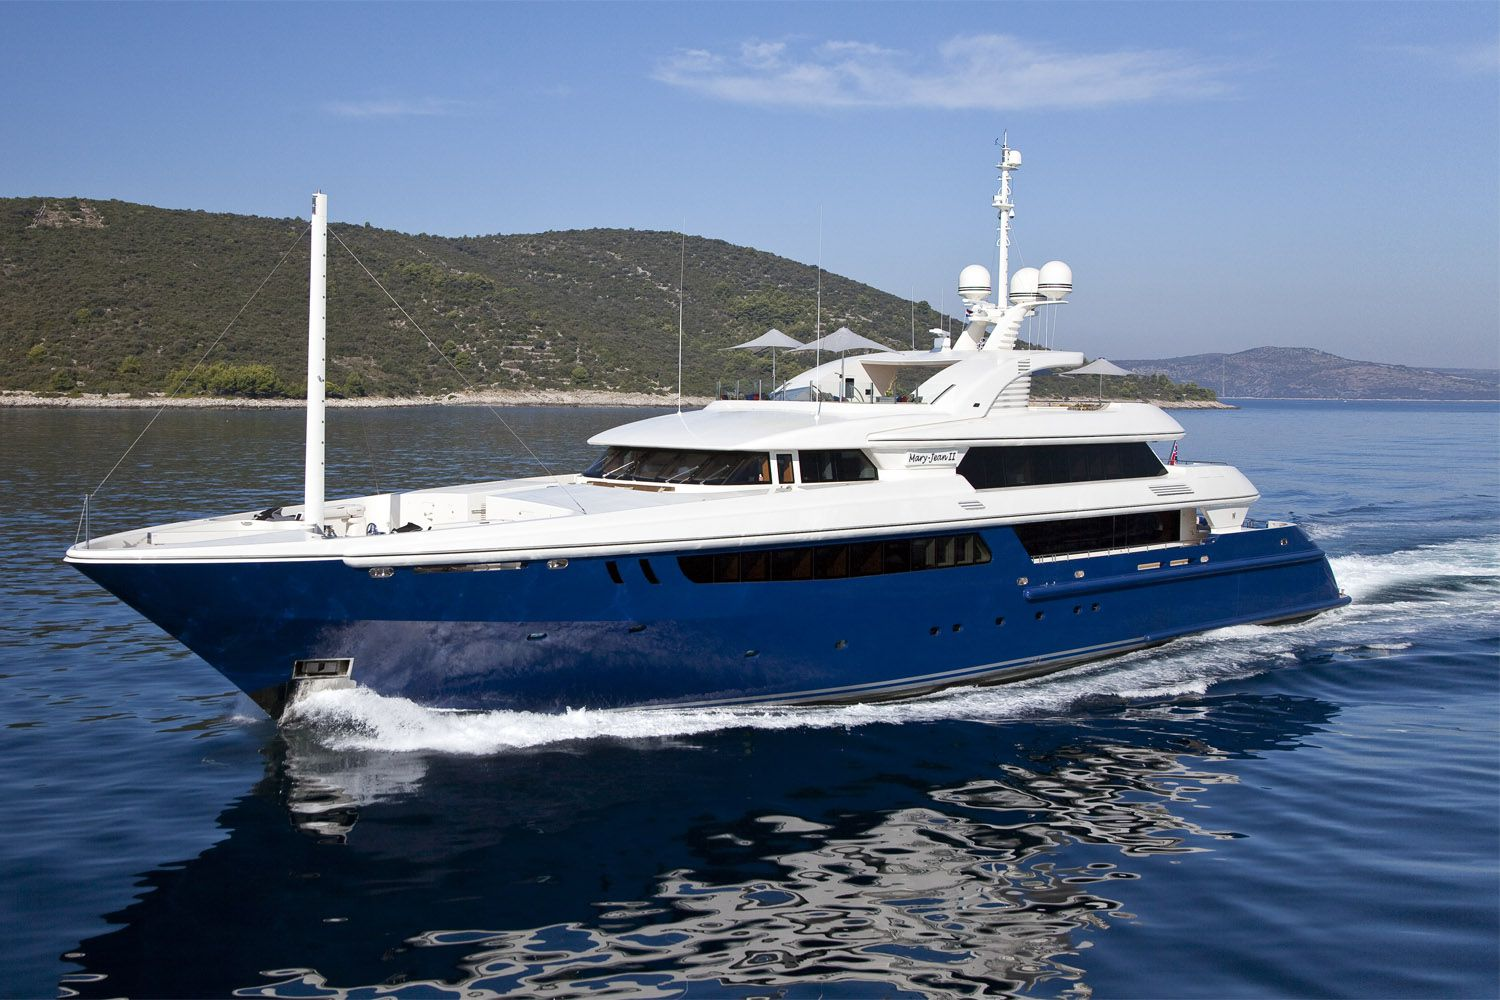 MARY JEAN II Yacht Charter Details ISA CHARTERWORLD